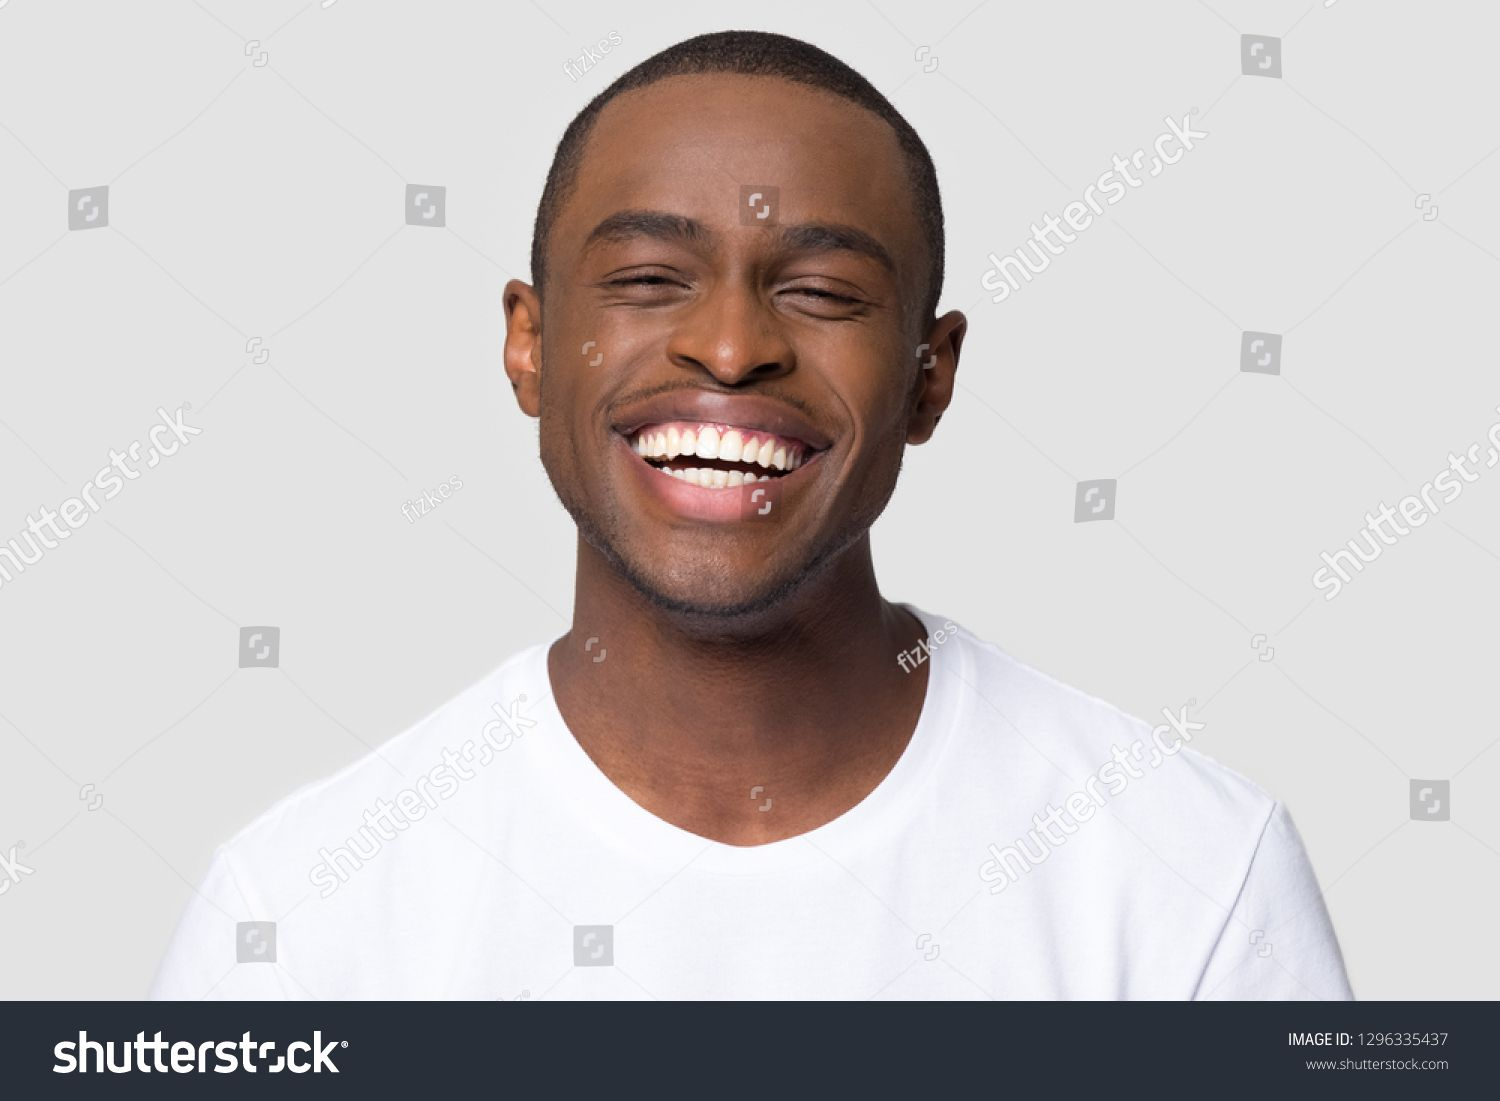 Cheerful Happy African Millennial Man Laughing Looking At Camera Isolated On Studio Blank Background Funny Young Black Guy With Photo Editing Man Stock Photos